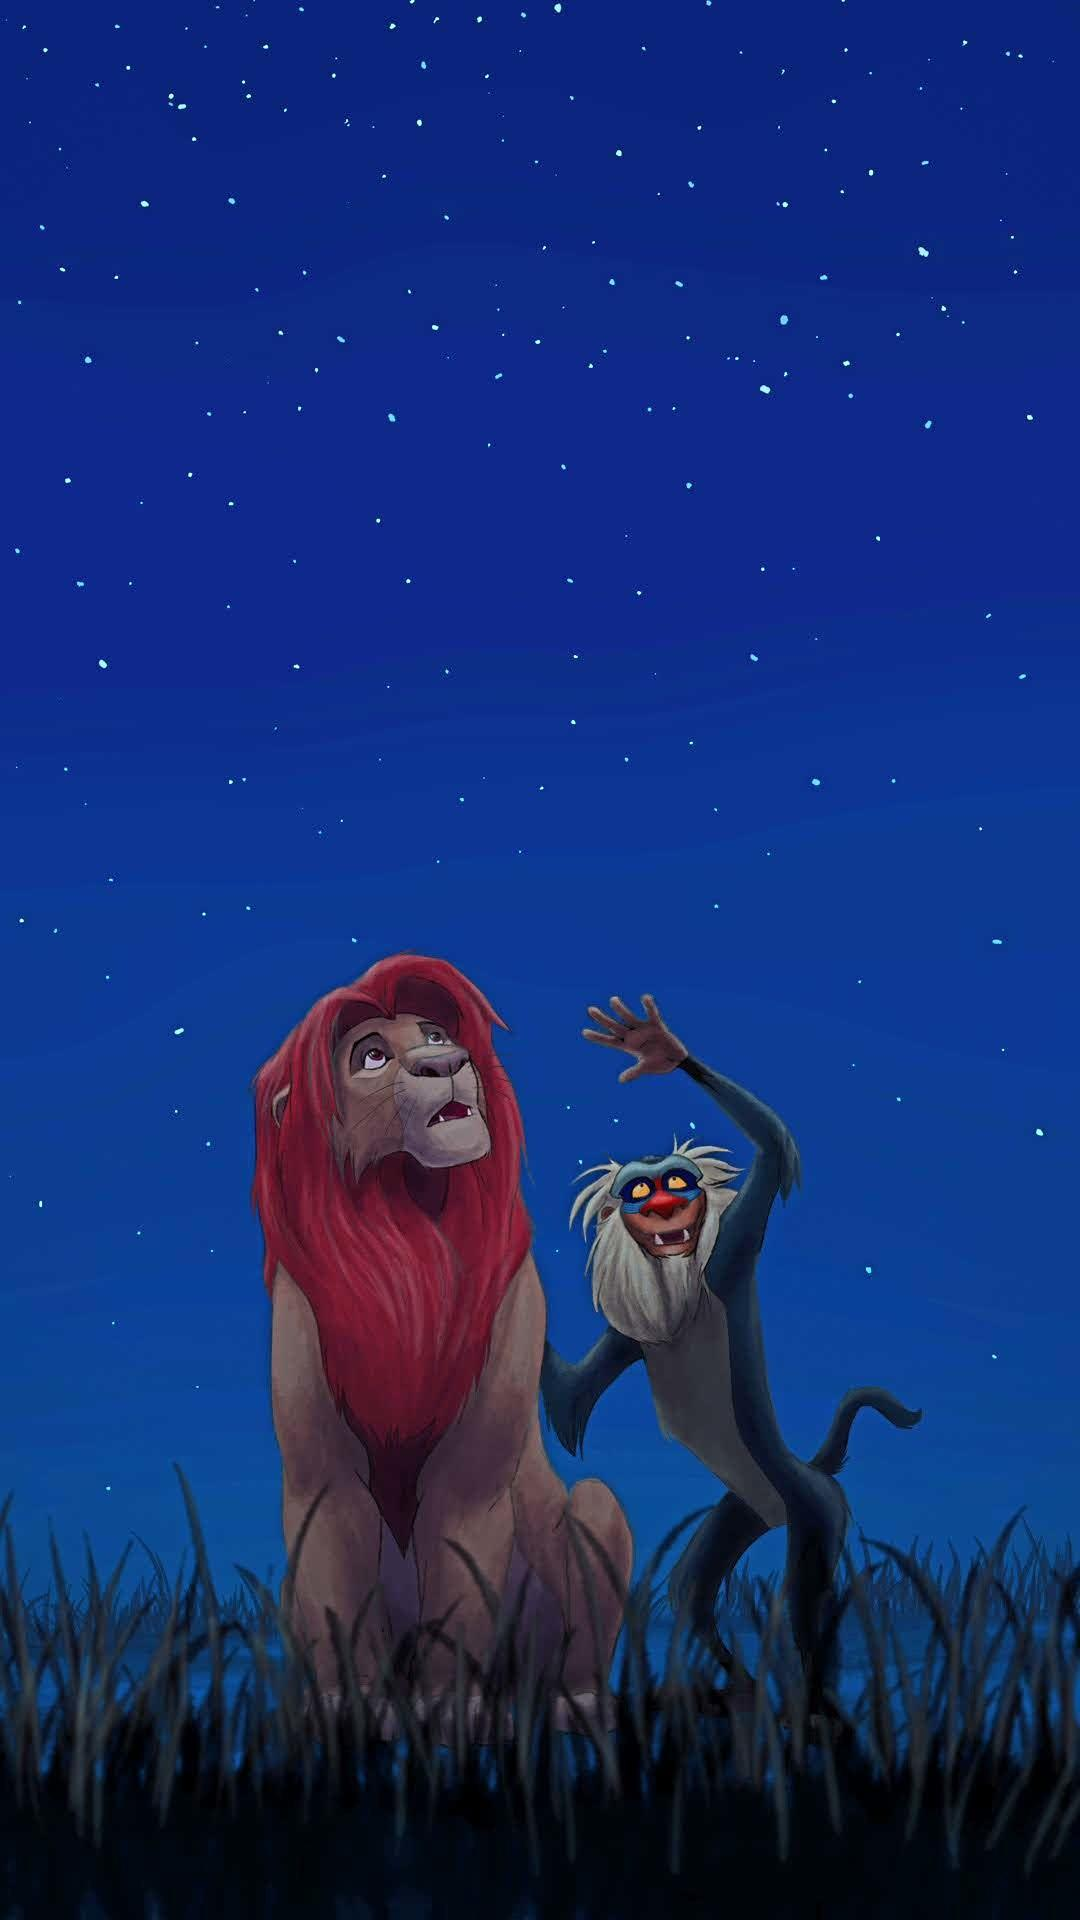 Simba And Mufasa The Lion King Wallpapers - Wallpaper Cave